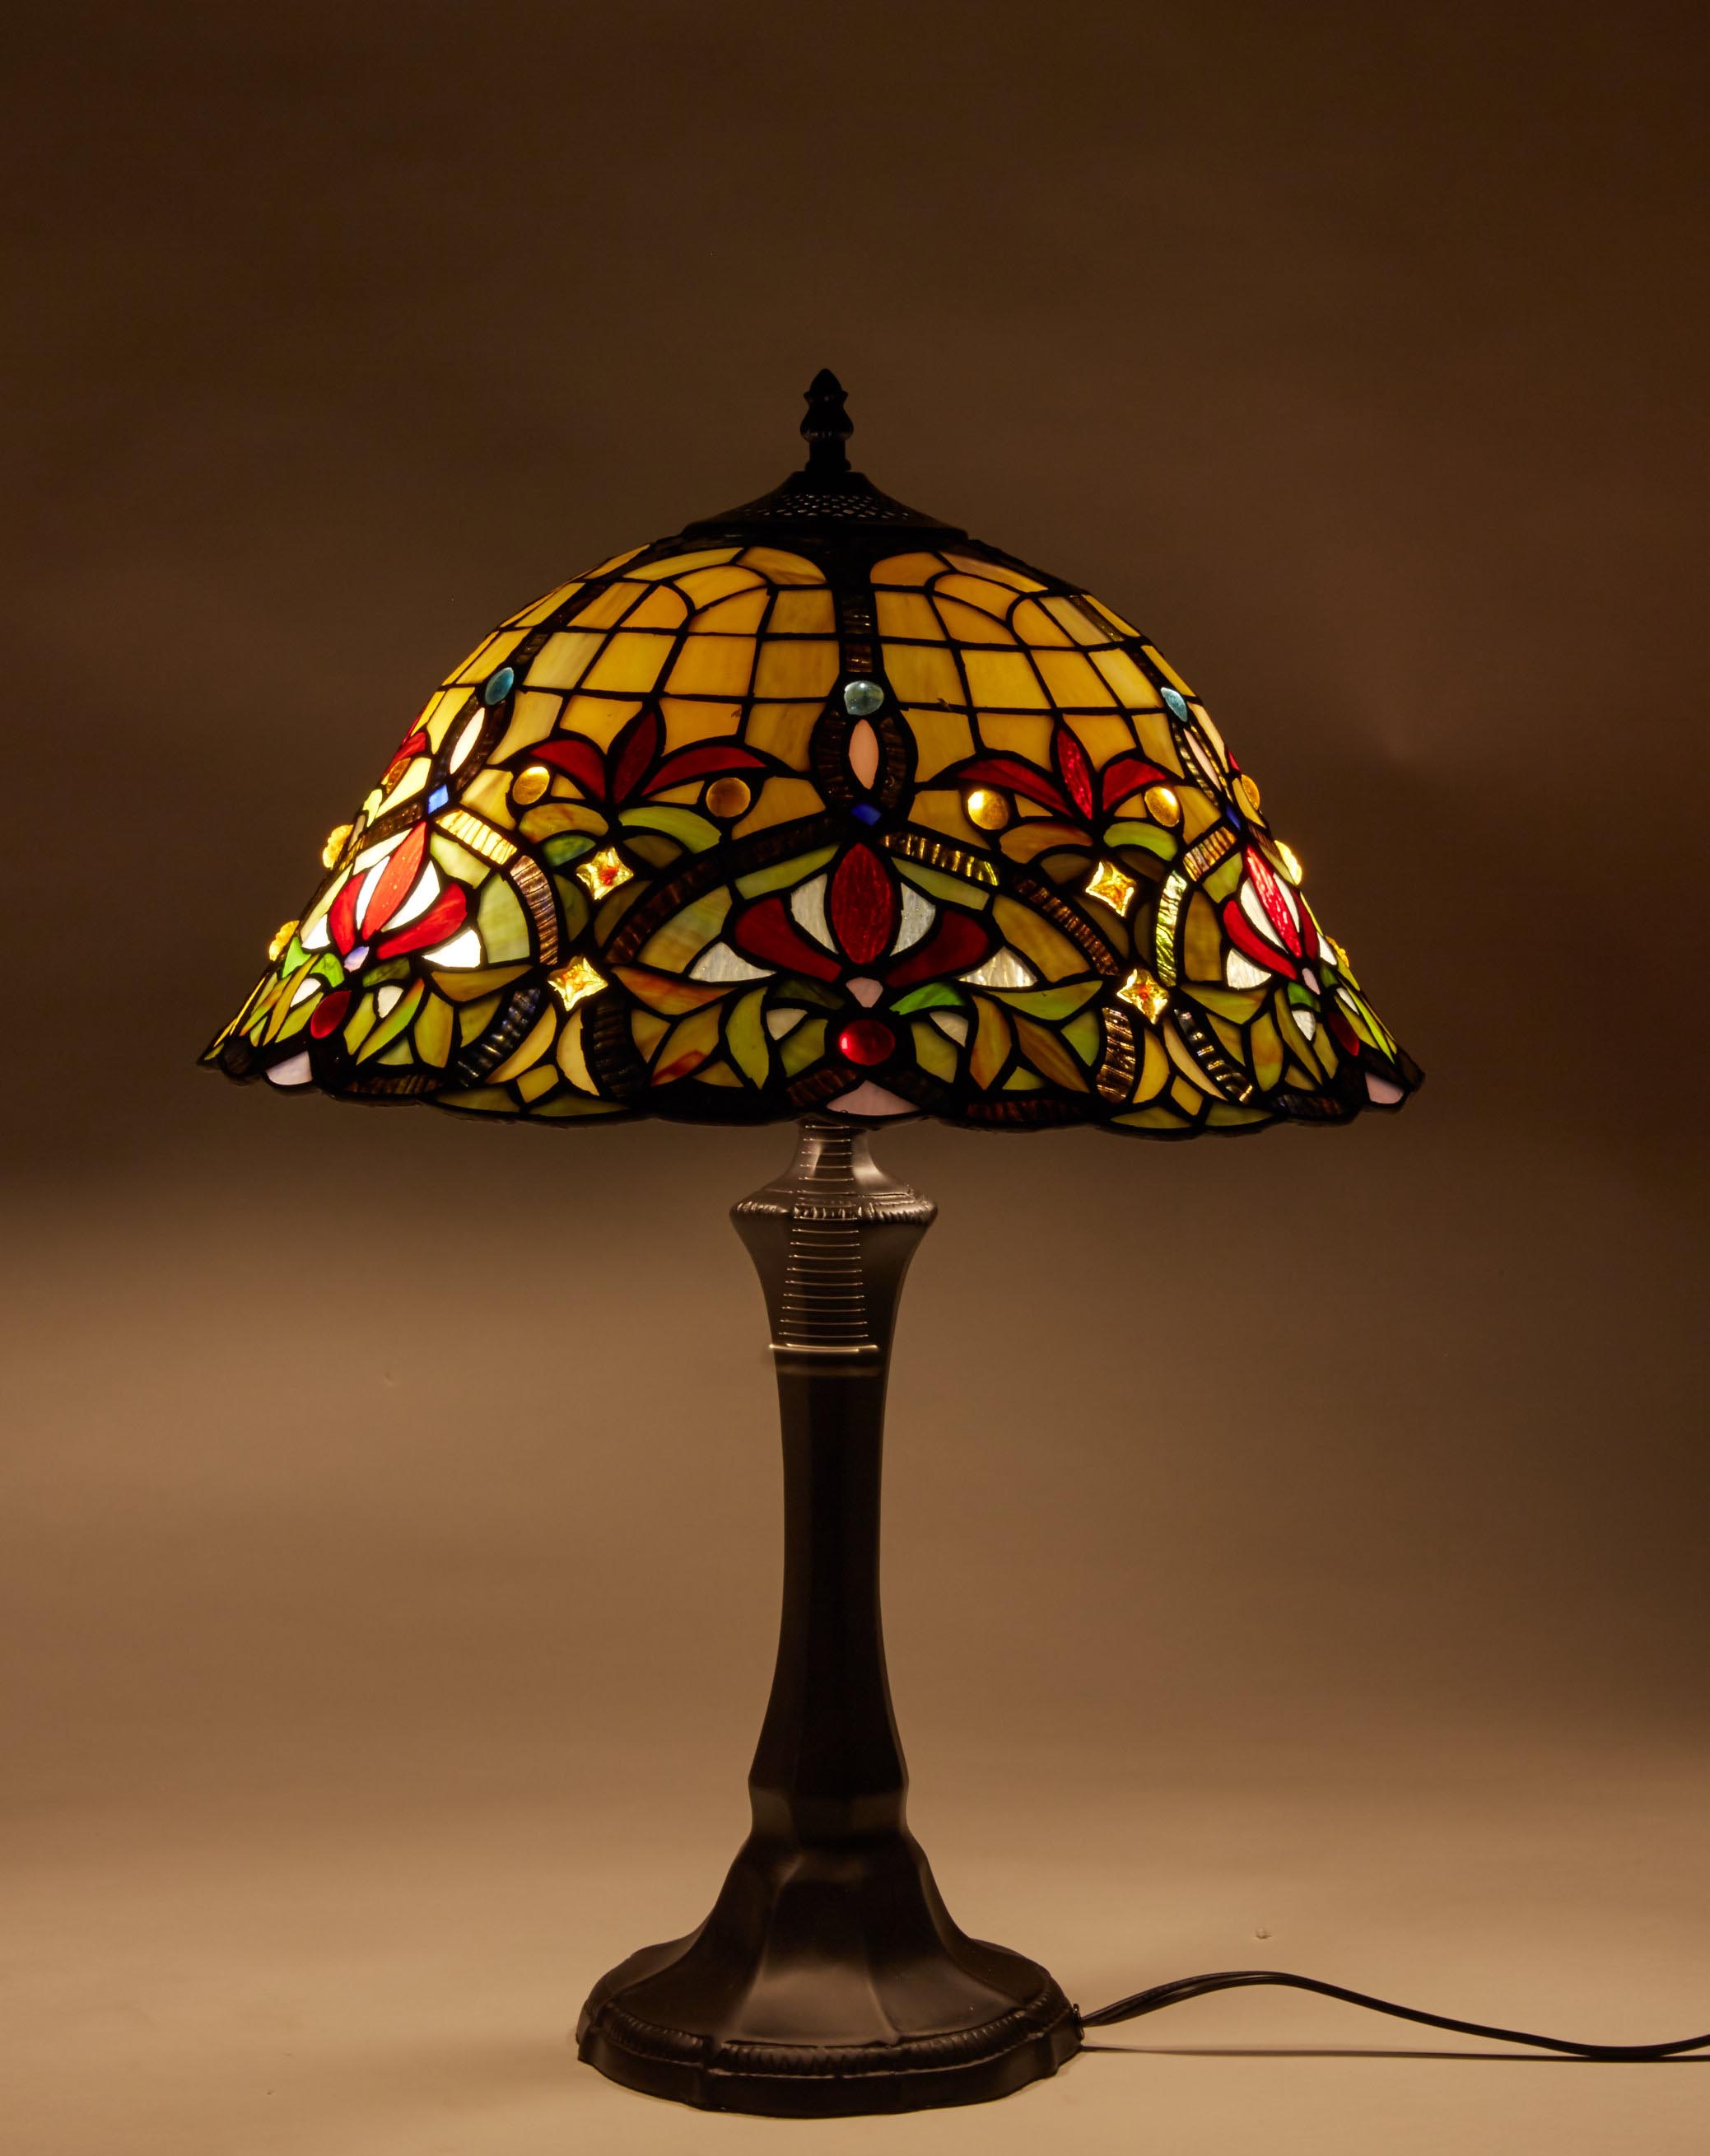 Stained Glass Lamp Shades For Table Lamps : Tiffany table lamp stained glass nightstand light